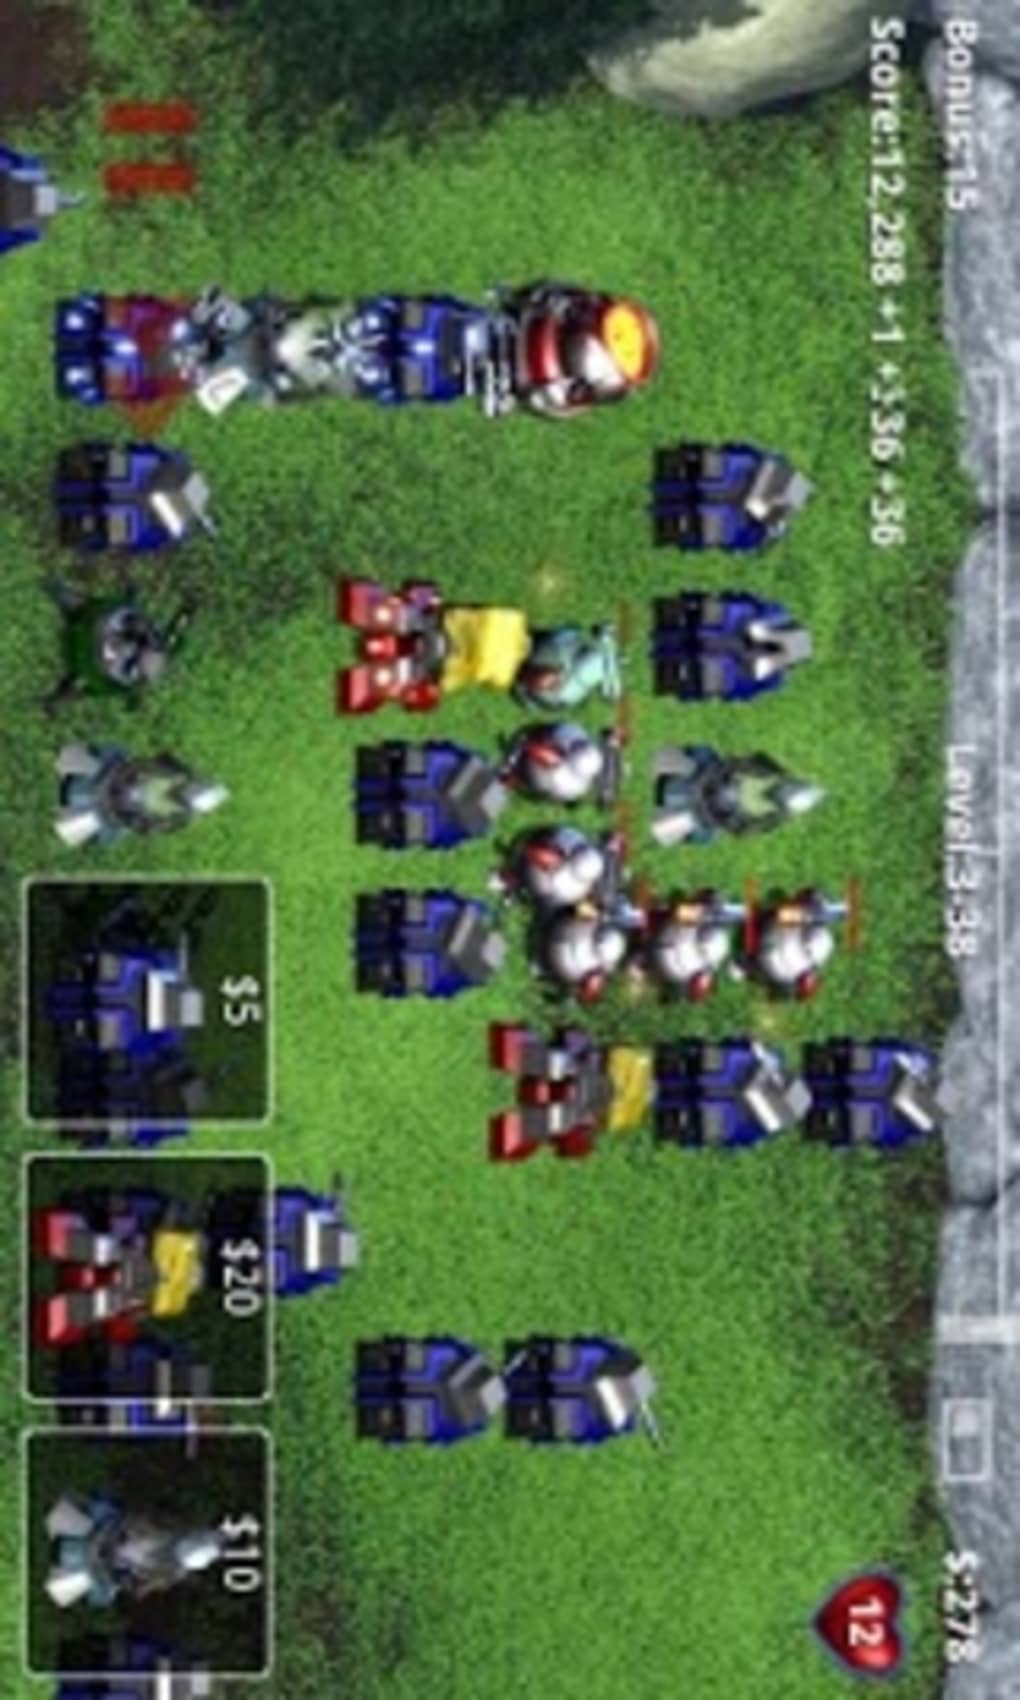 robo defense full version apk free download